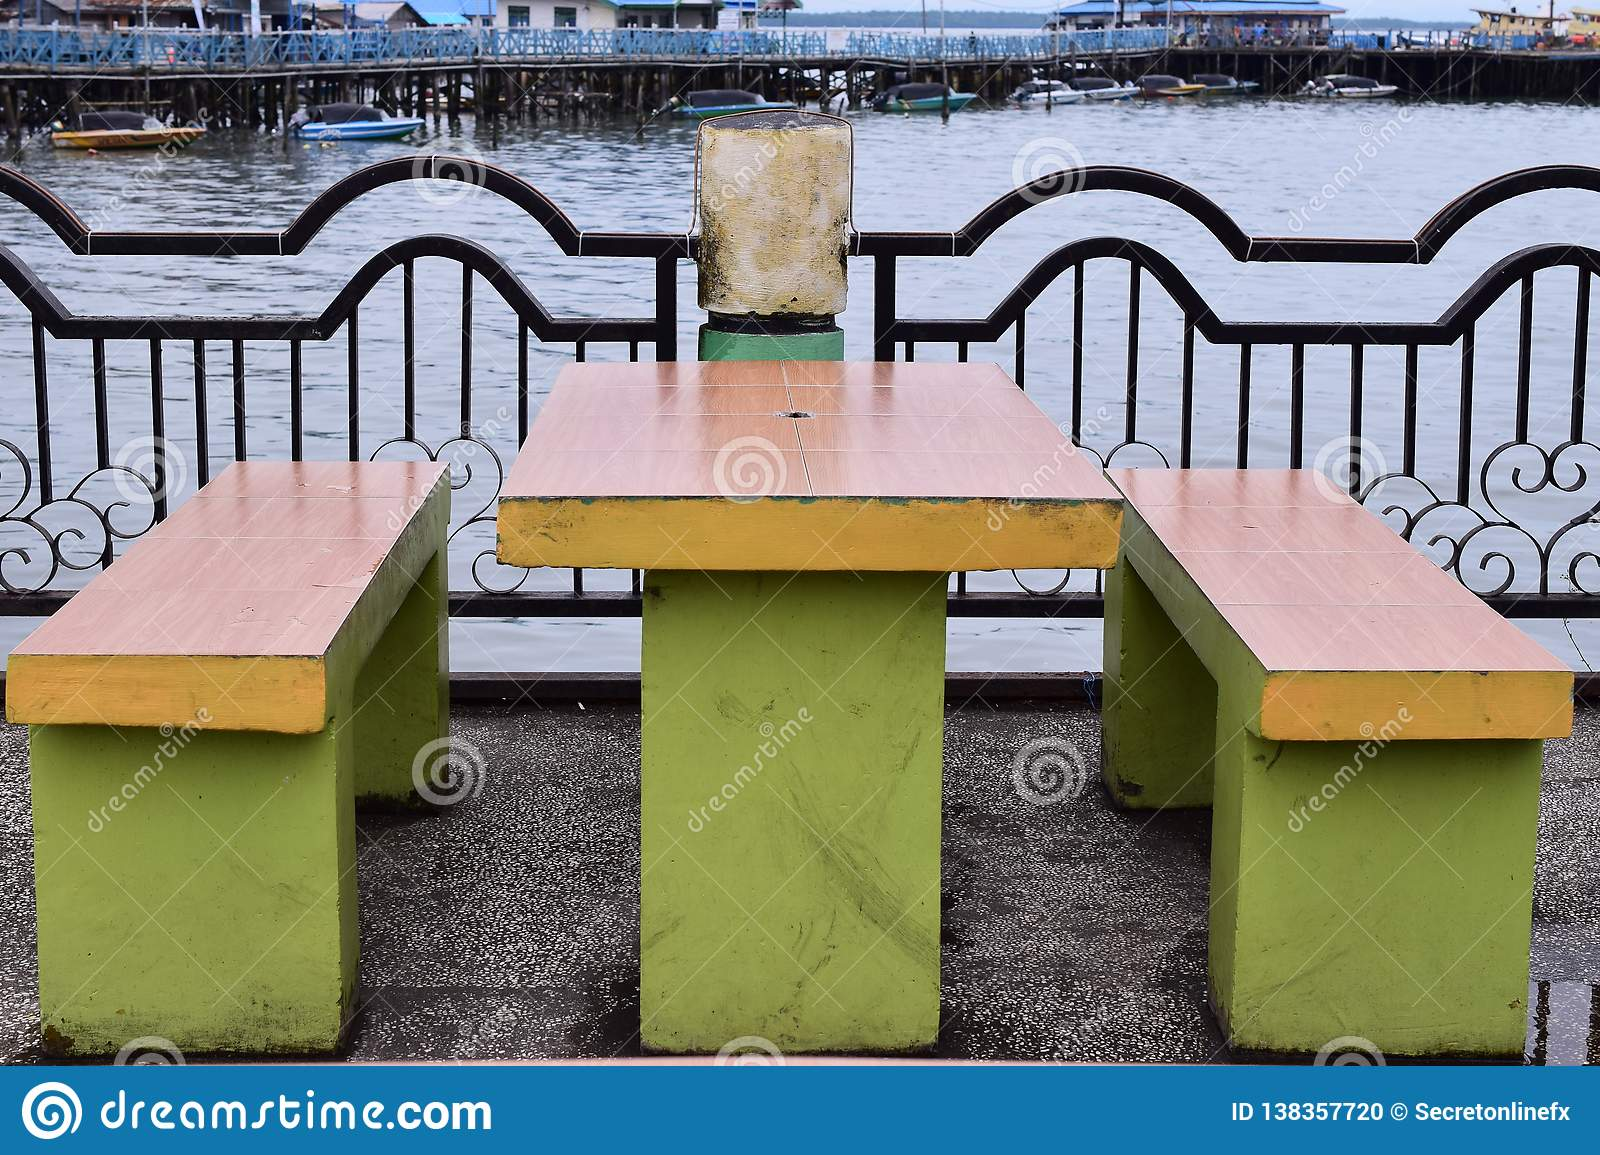 Sit bench in a public place and bridge over the river